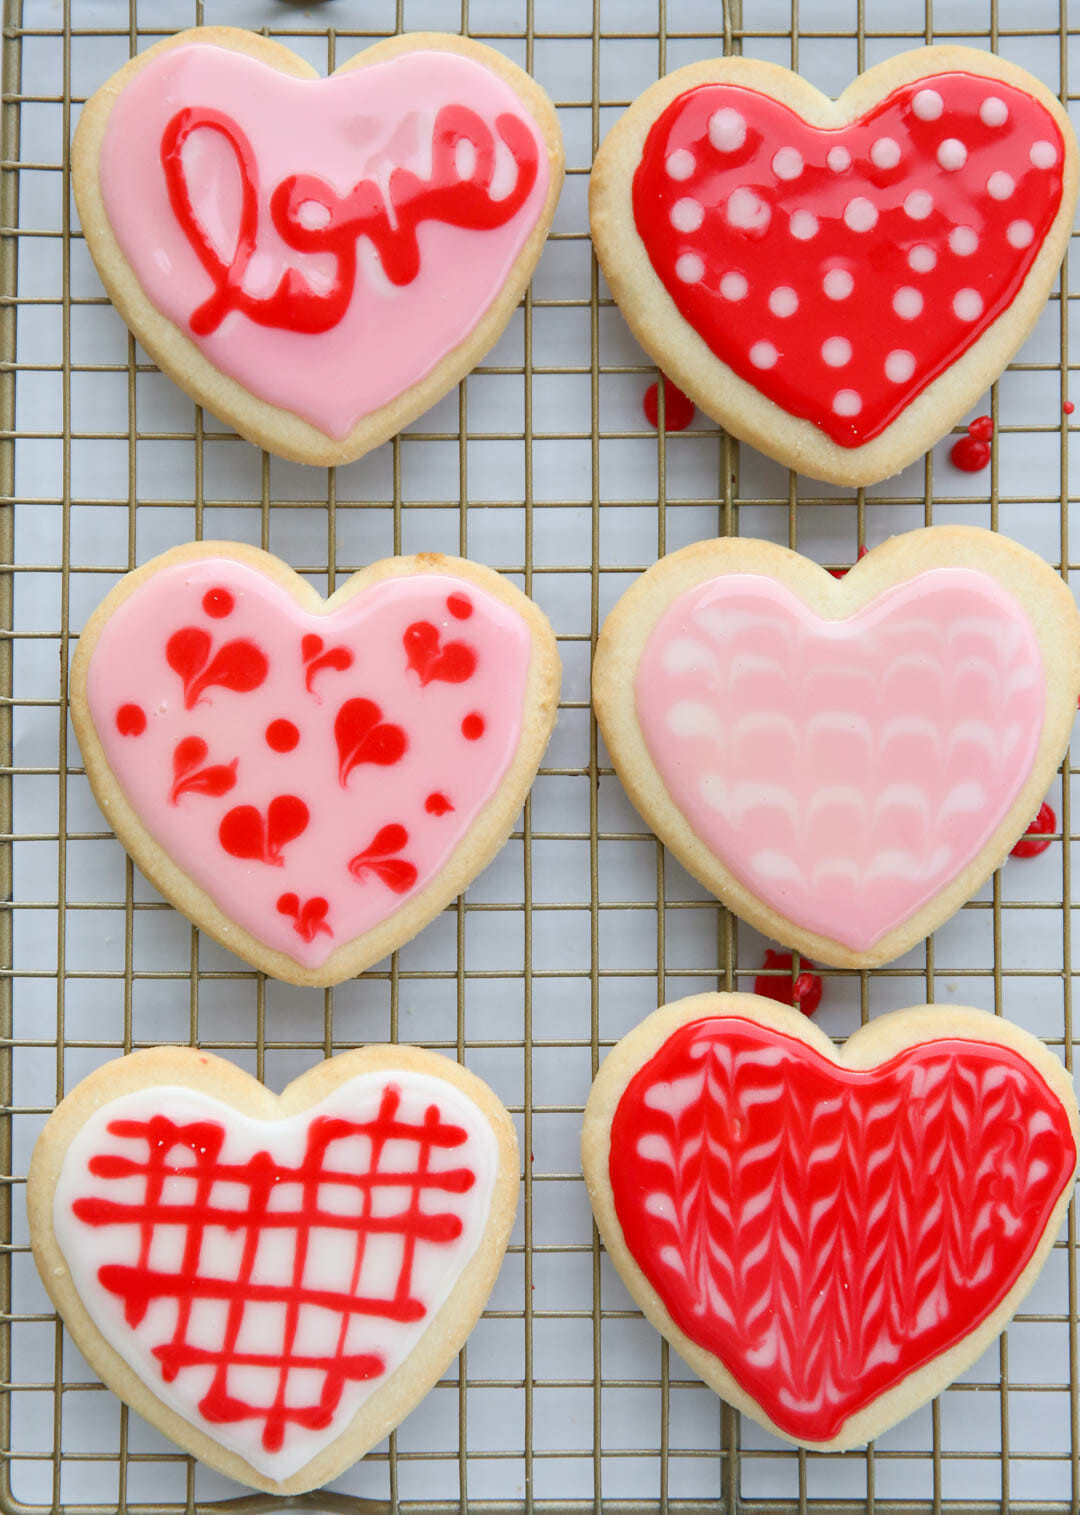 Best Icing For Sugar Cookies  Tutorial Cookie Decorating with Glace Icing Our Best Bites